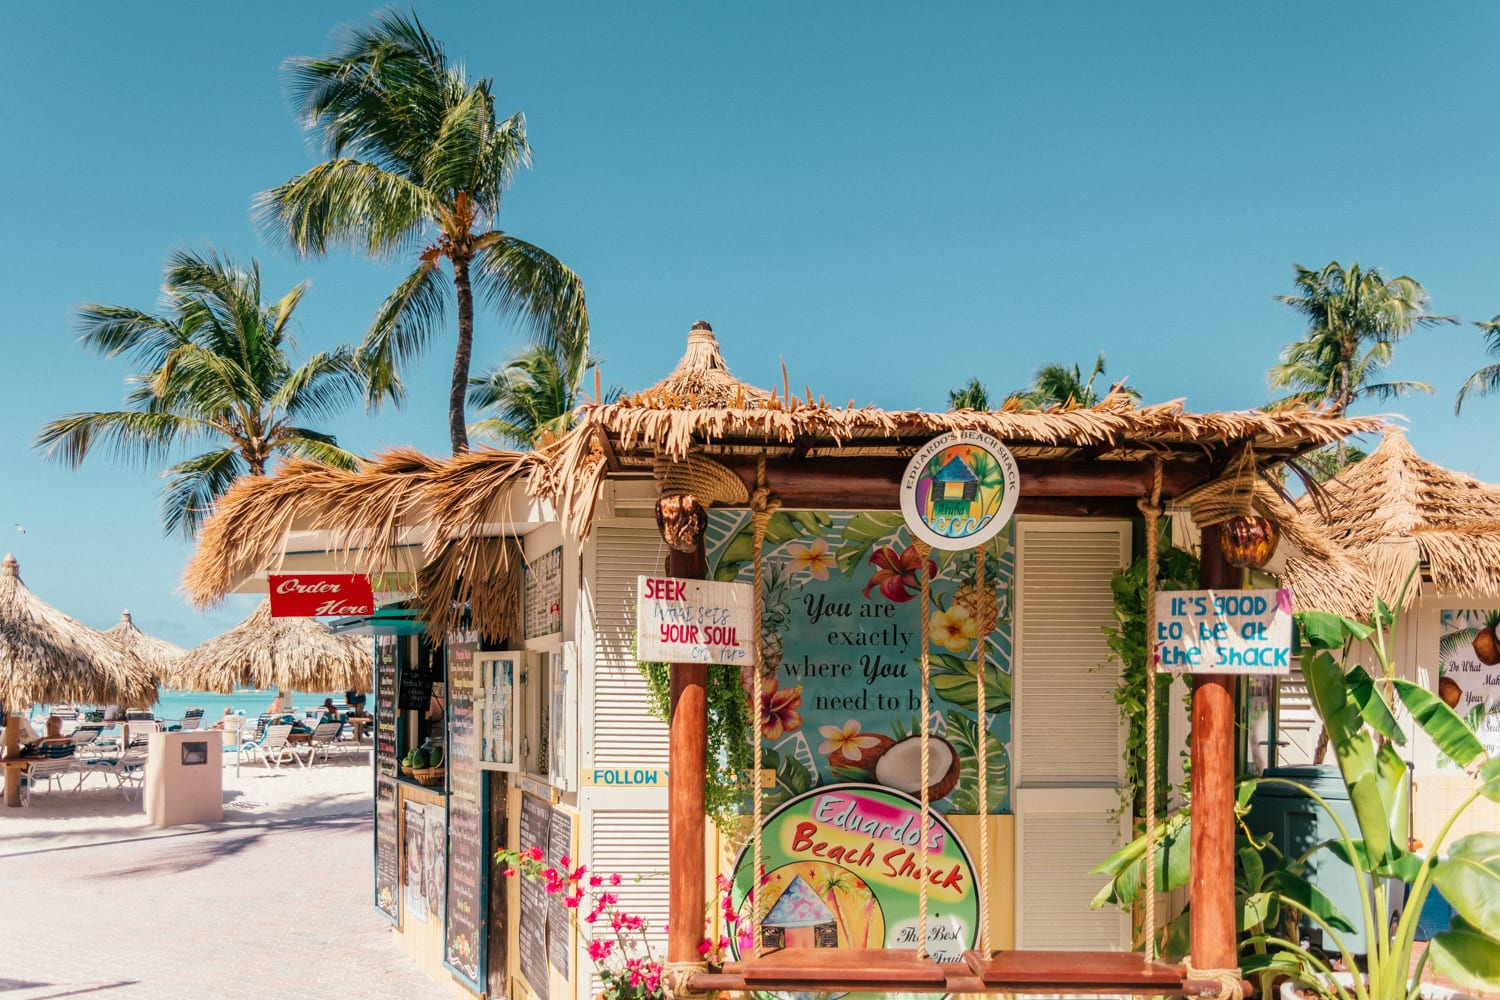 Eduardo's Beach Shack | The Ultimate Aruba Travel Guide